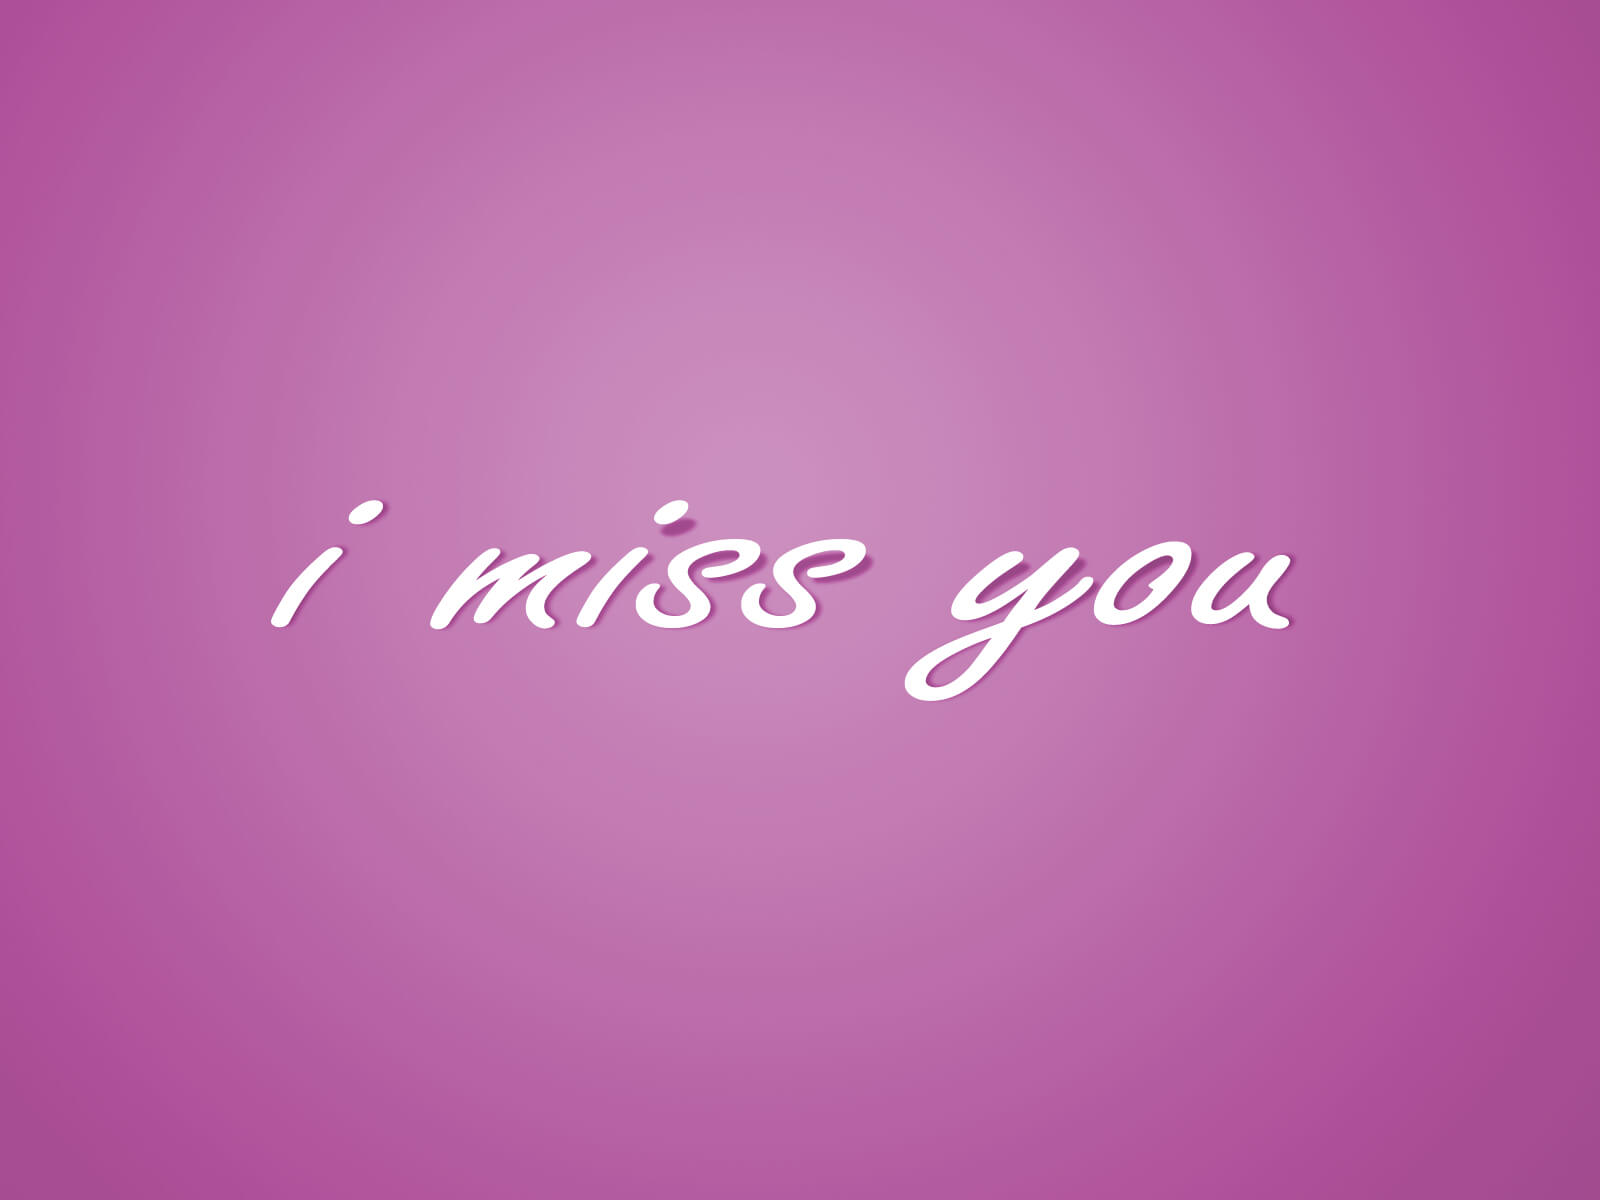 55 i miss you animated images-gifs and wallpapers | entertainmentmesh